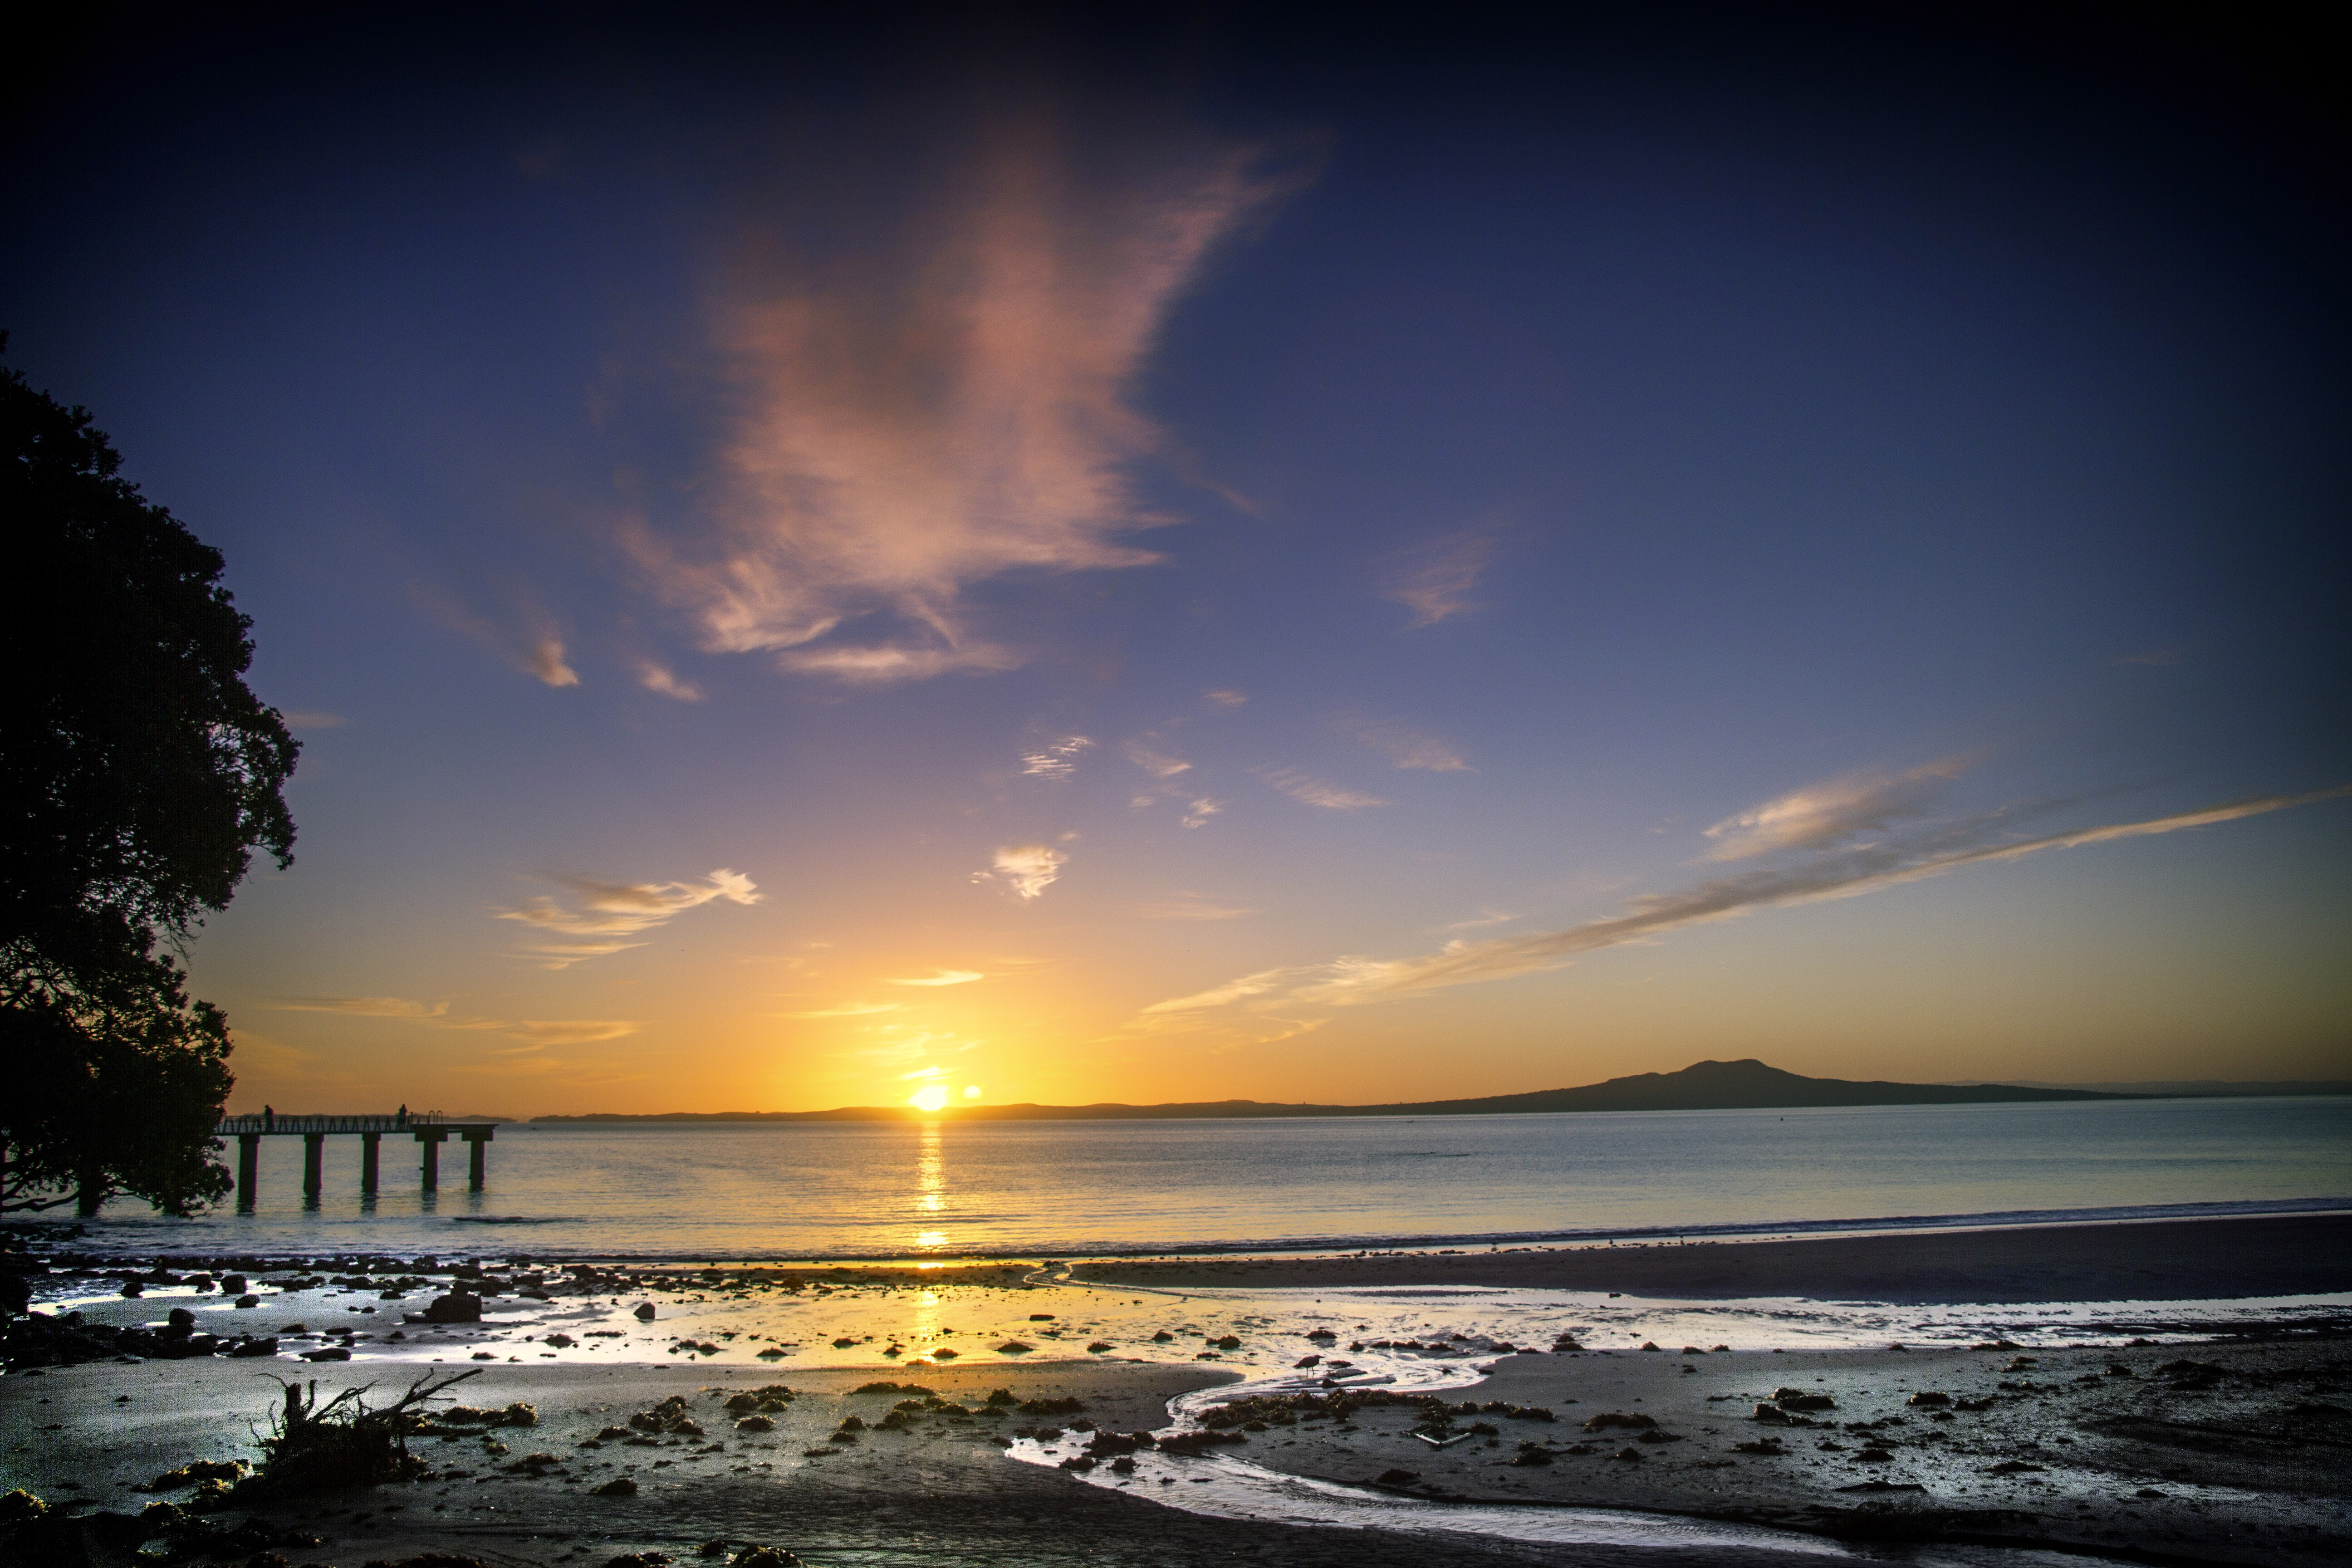 sunrise on the beach in auckland  new zealand image - free stock photo